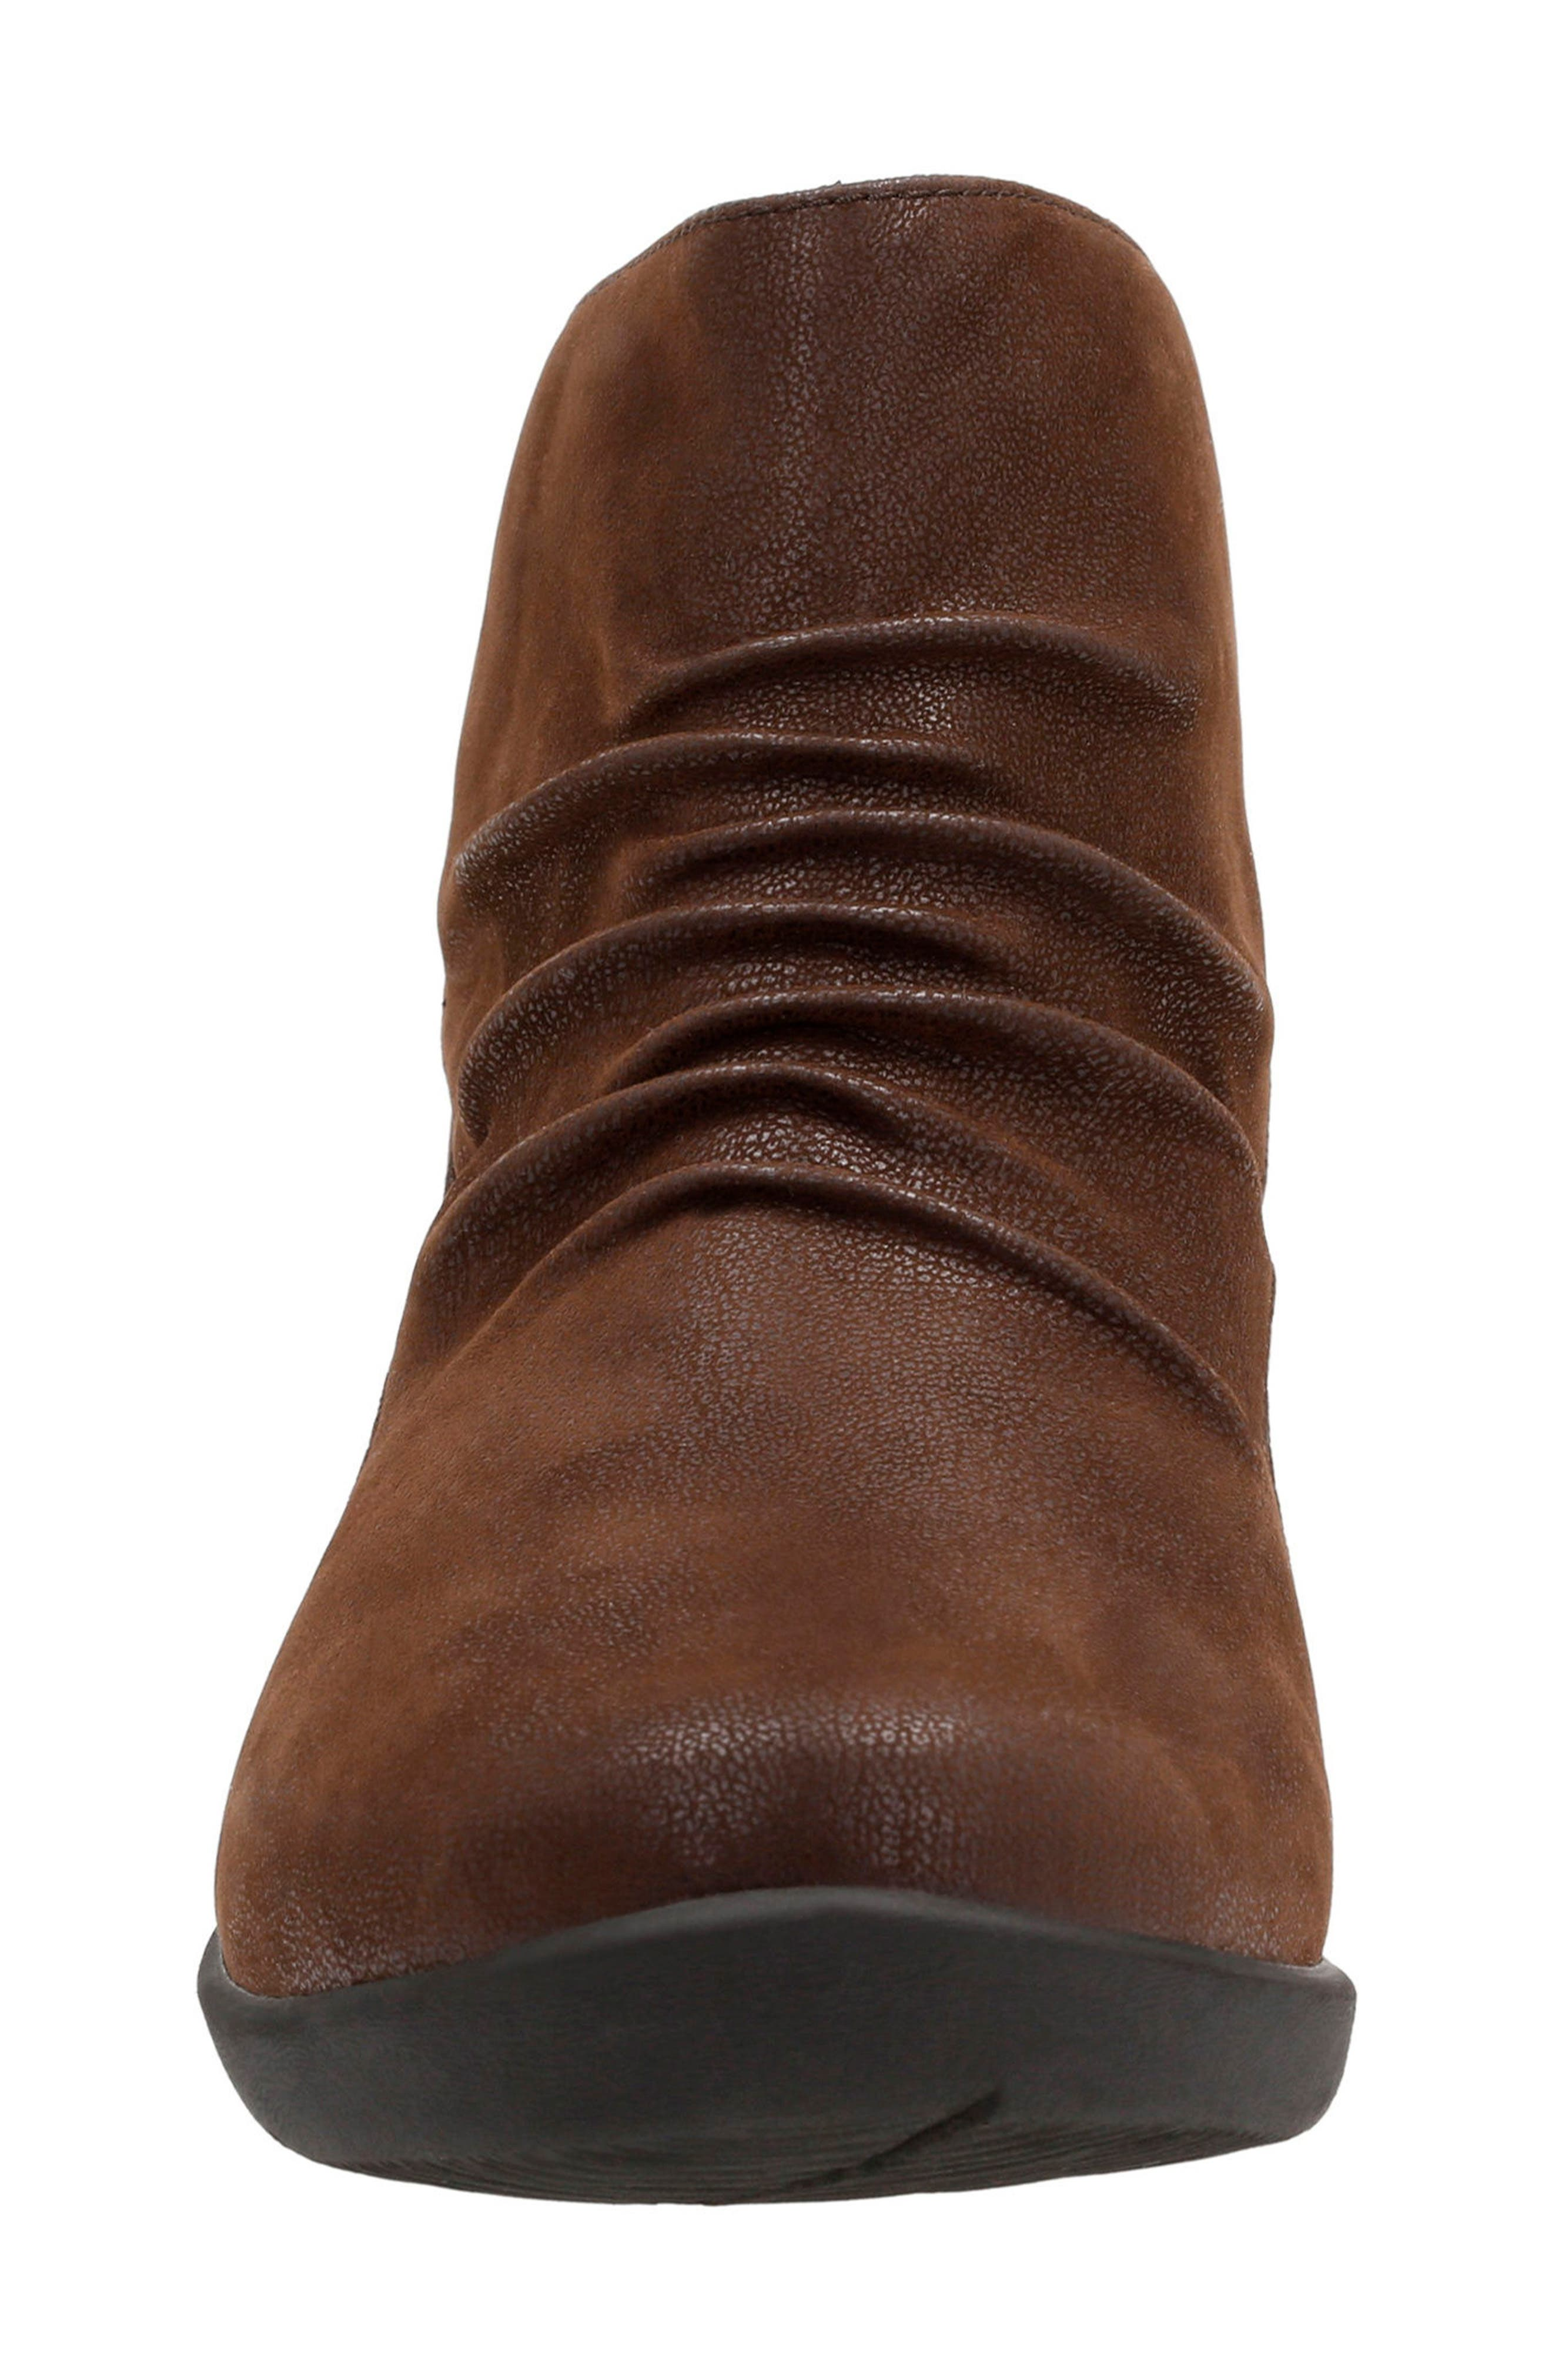 Sillian Sway Boot,                             Alternate thumbnail 4, color,                             BROWN FABRIC